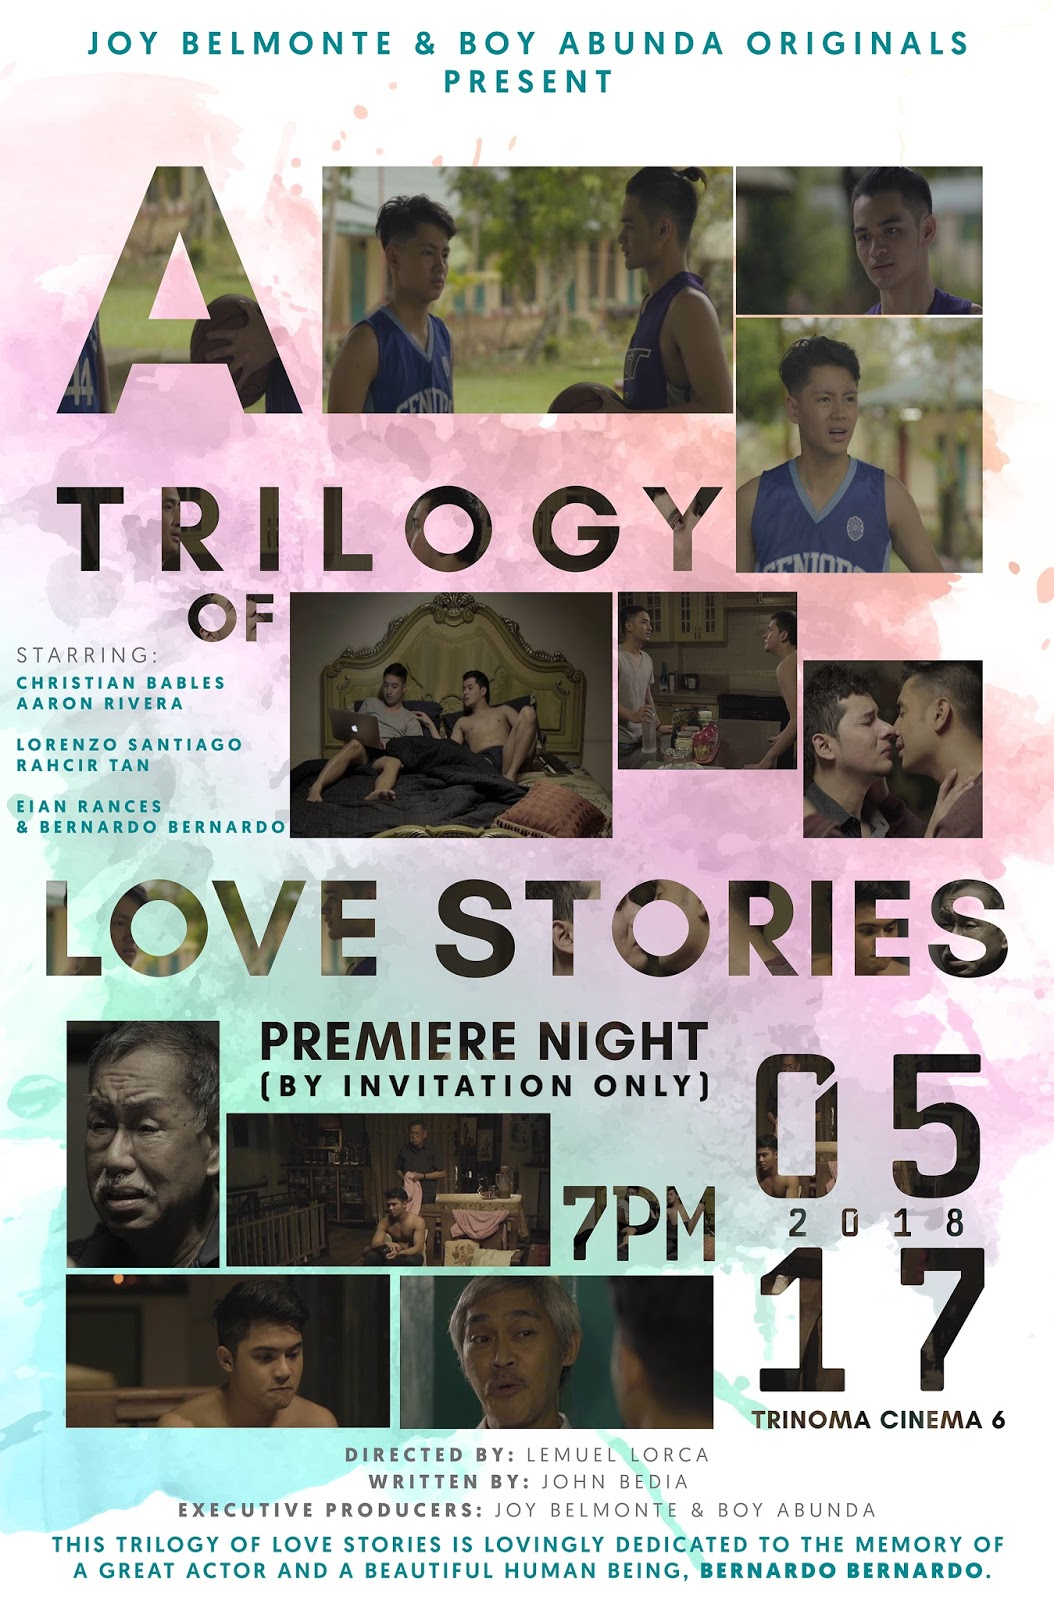 A trilogy of love stories honors bernardo bernardo a trilogy of love stories directed by lemuel lorca and written by john bedia will have its premiere night by invitation only on may 17 7pm at trinoma stopboris Gallery